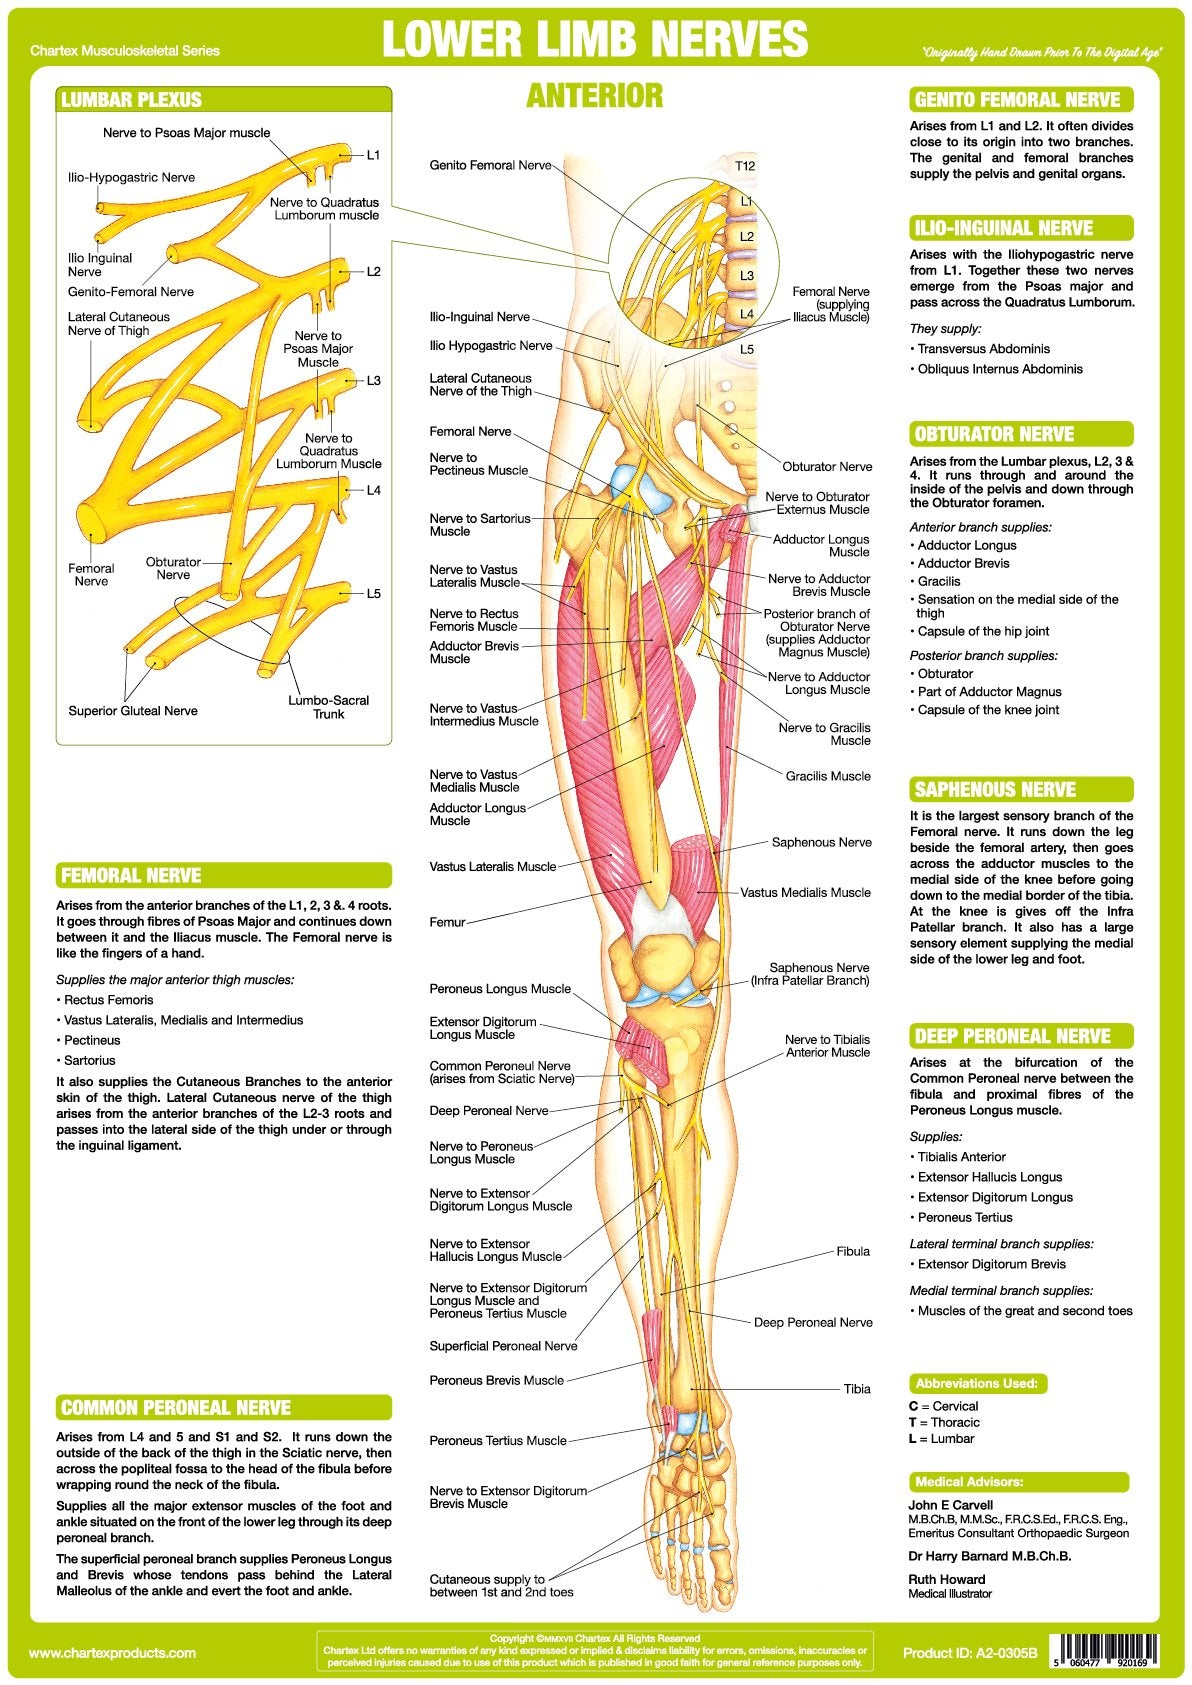 Lower Limb Nerve Anatomy Chart - Anterior